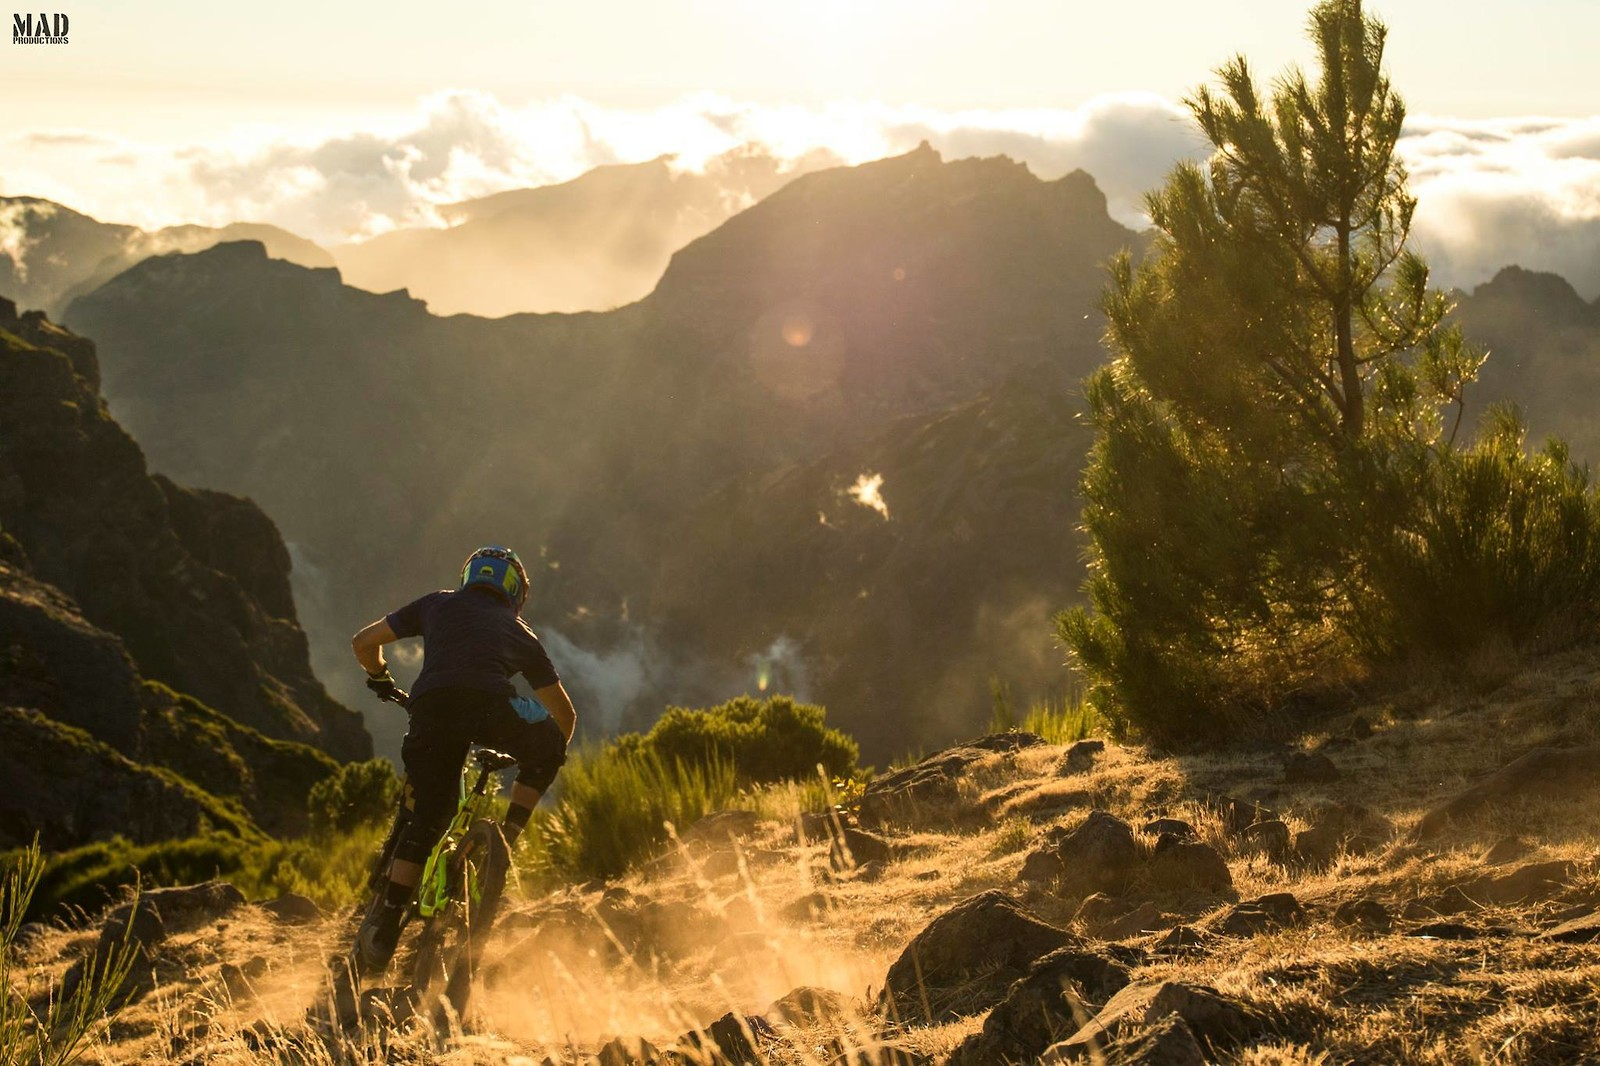 Where it all begins... - madproductions - Mountain Biking Pictures - Vital MTB